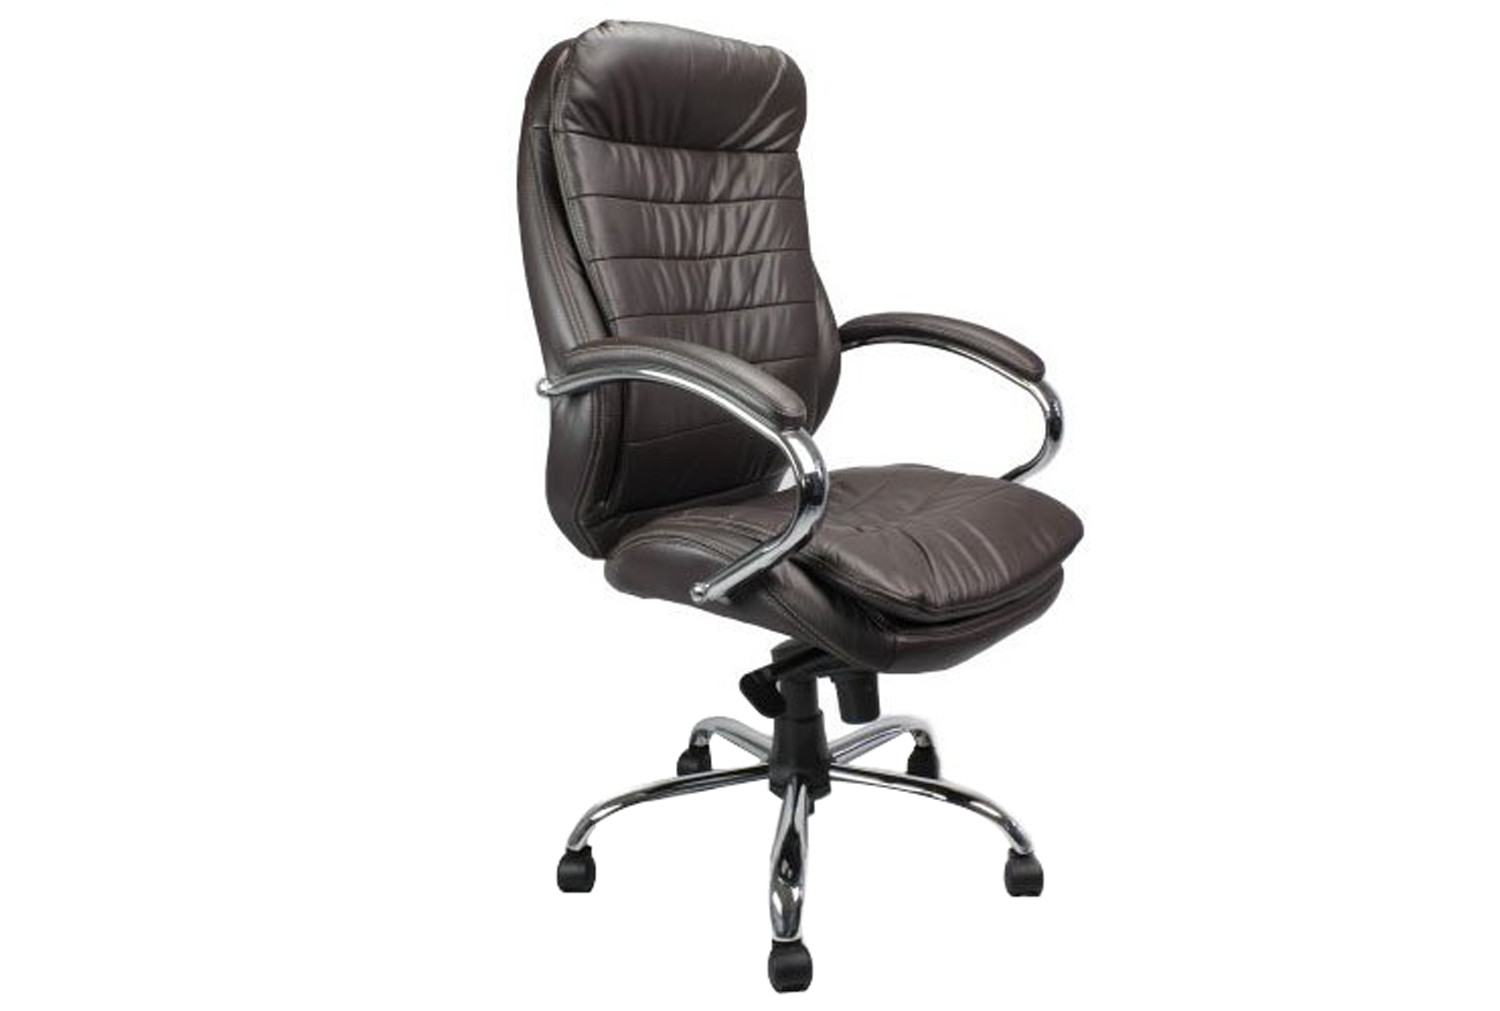 Nairn Brown Leather Faced Executive Chair